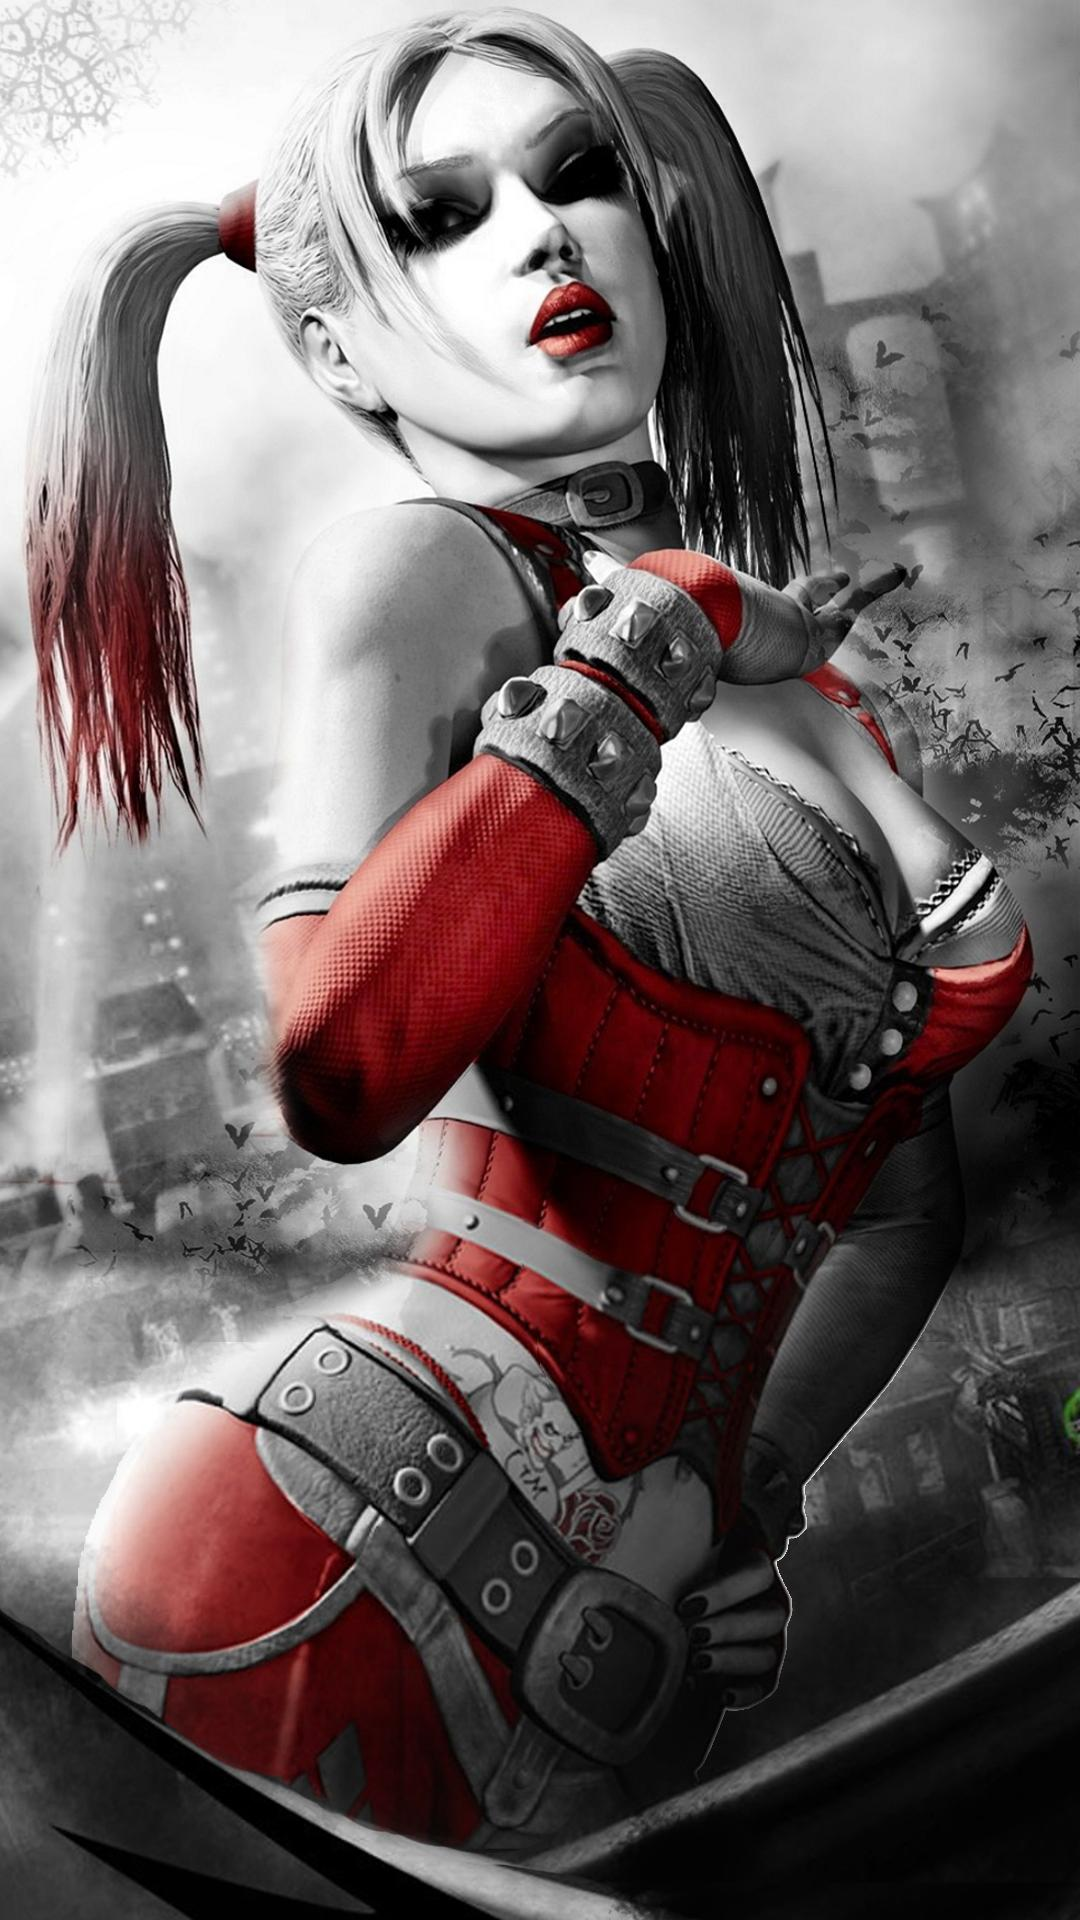 Harley Quinn Iphone 6 Wallpaper Wallpapersafari